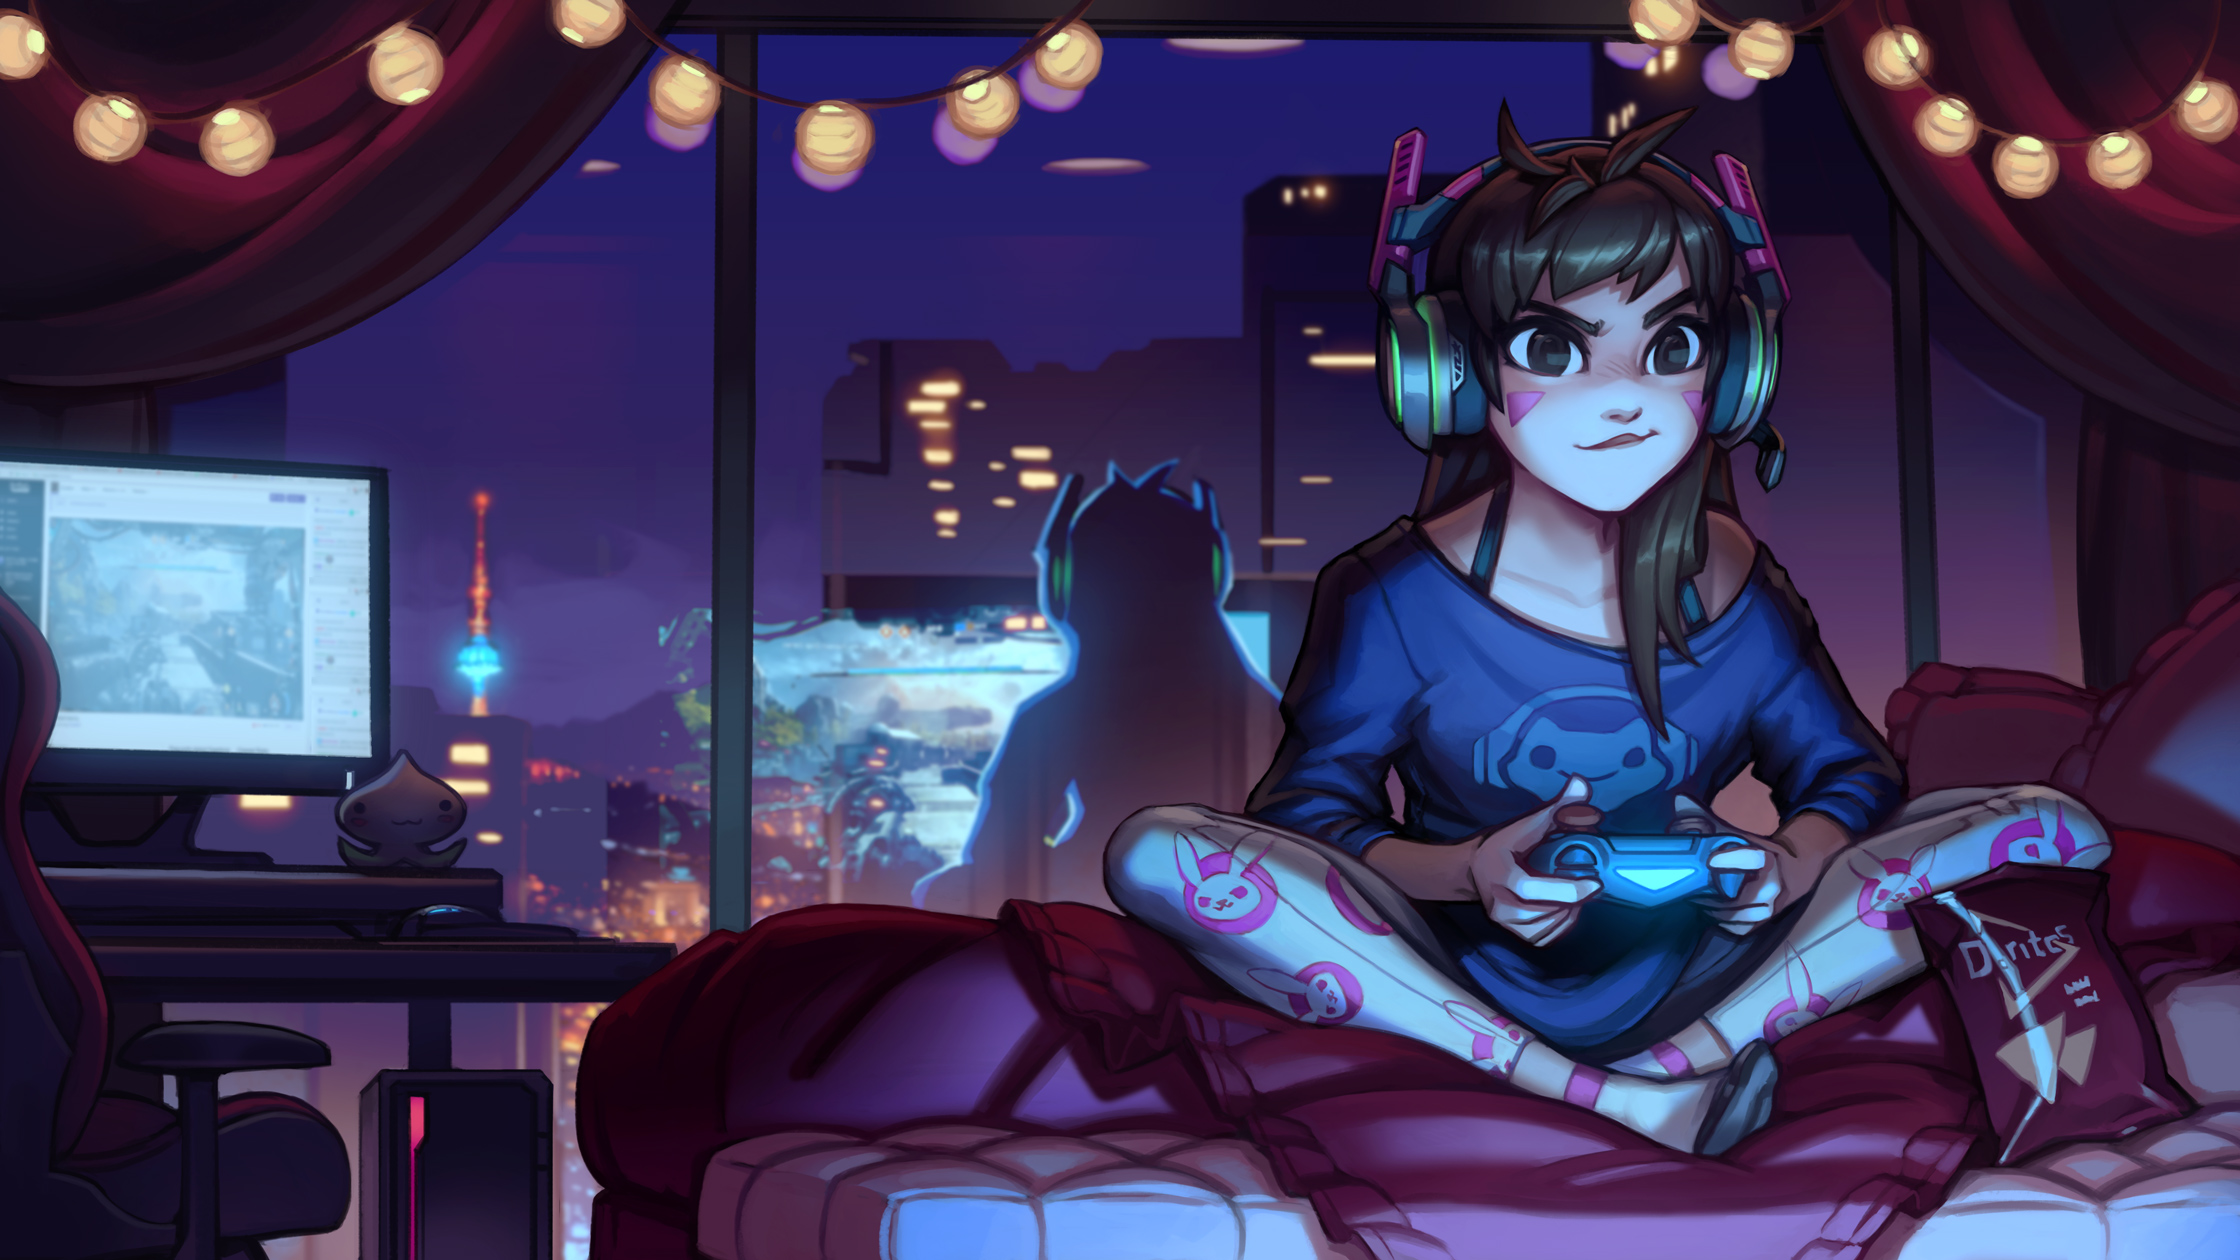 dva overwatch cute artwork hd games 4k wallpapers images